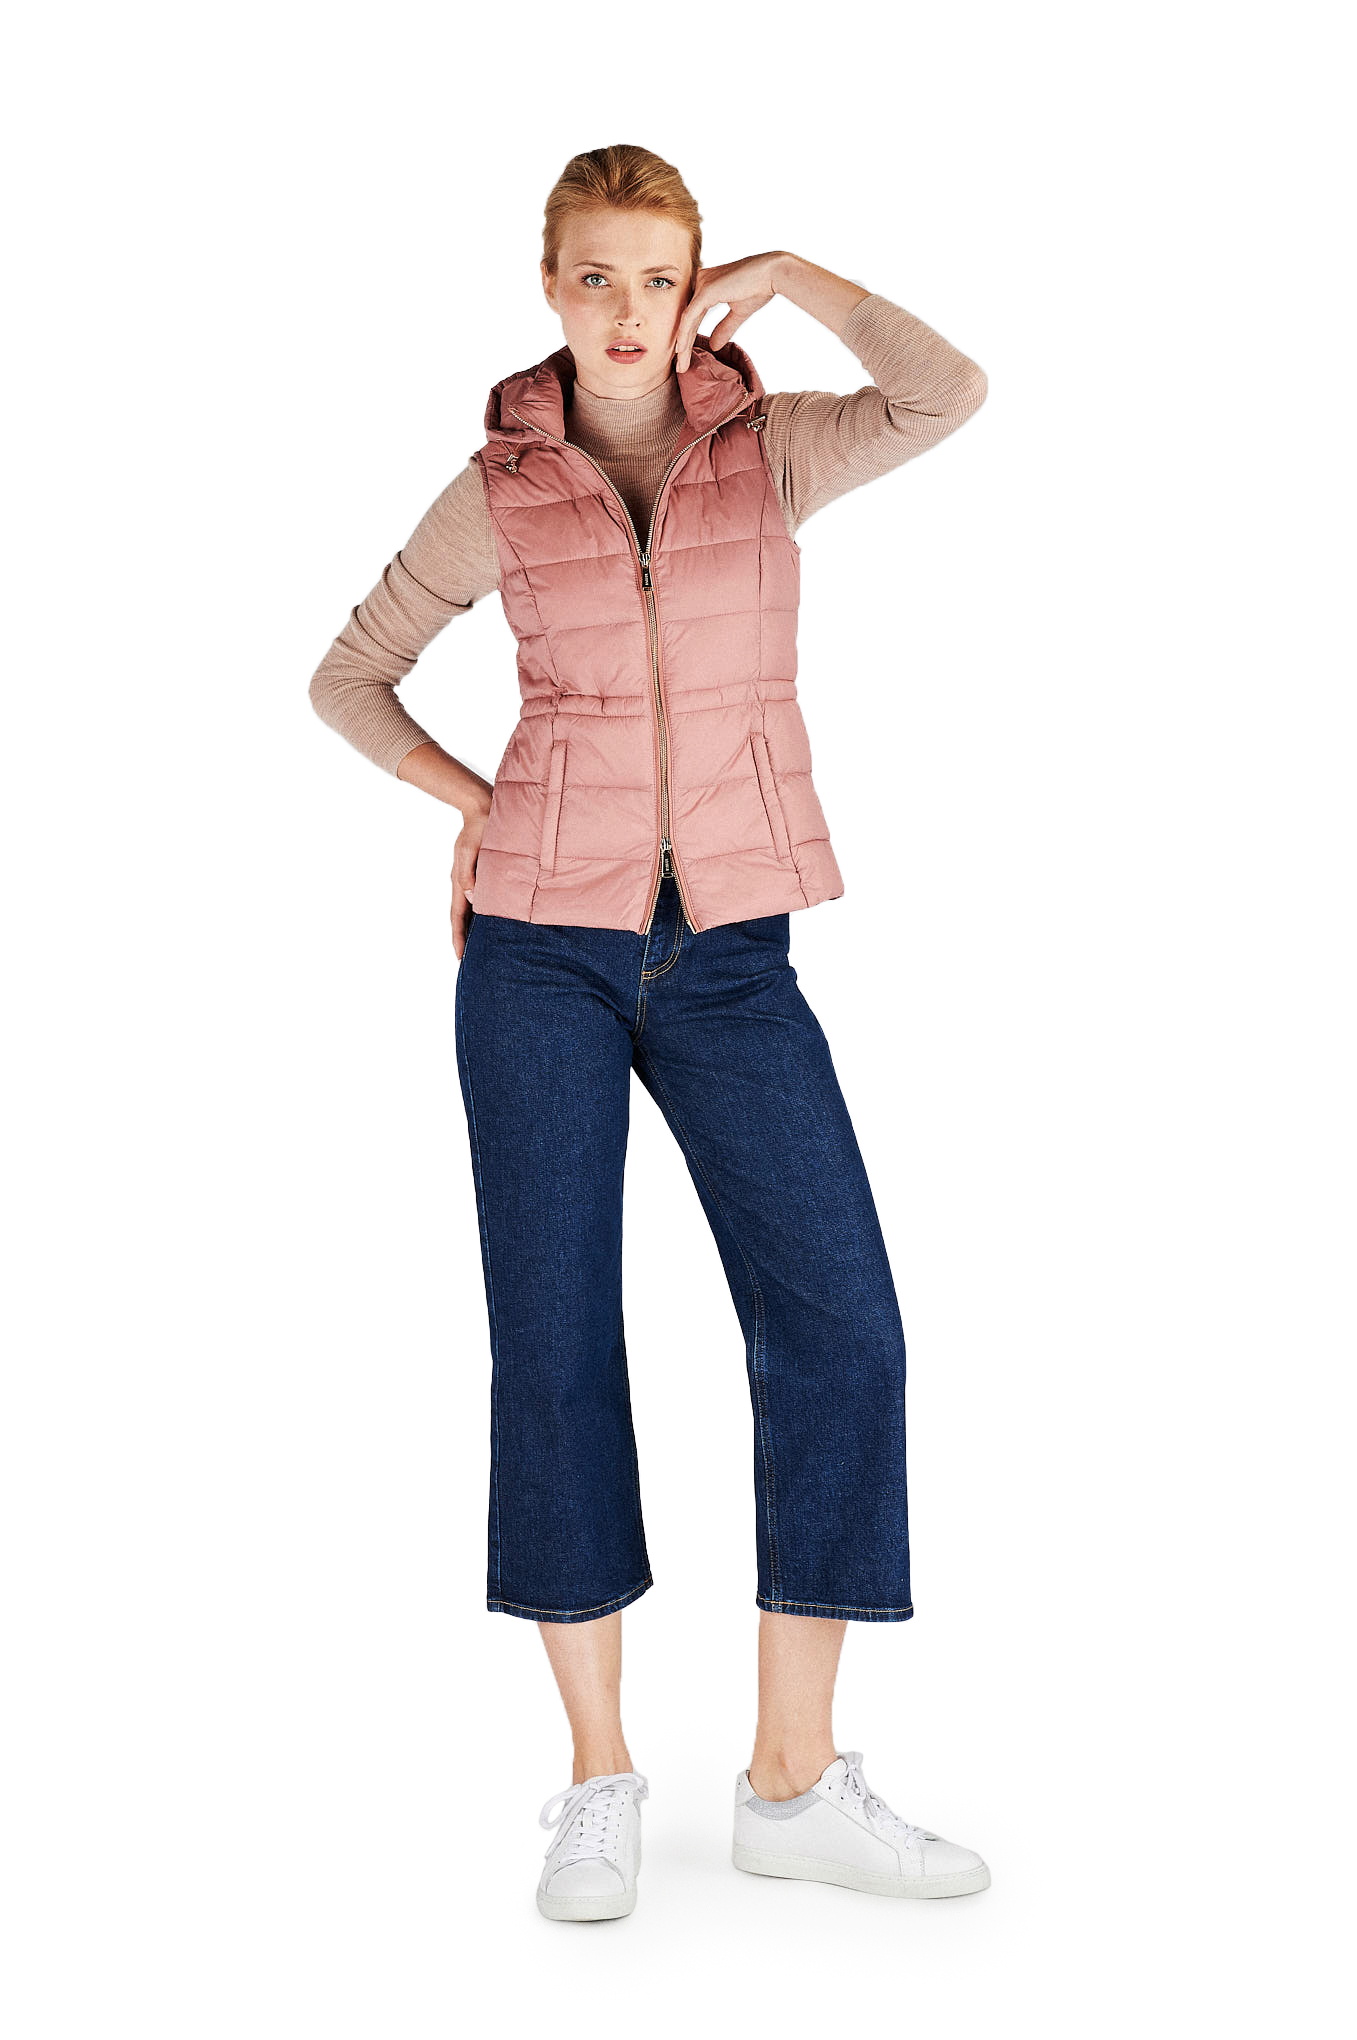 Colete Rosa Casual Mulher